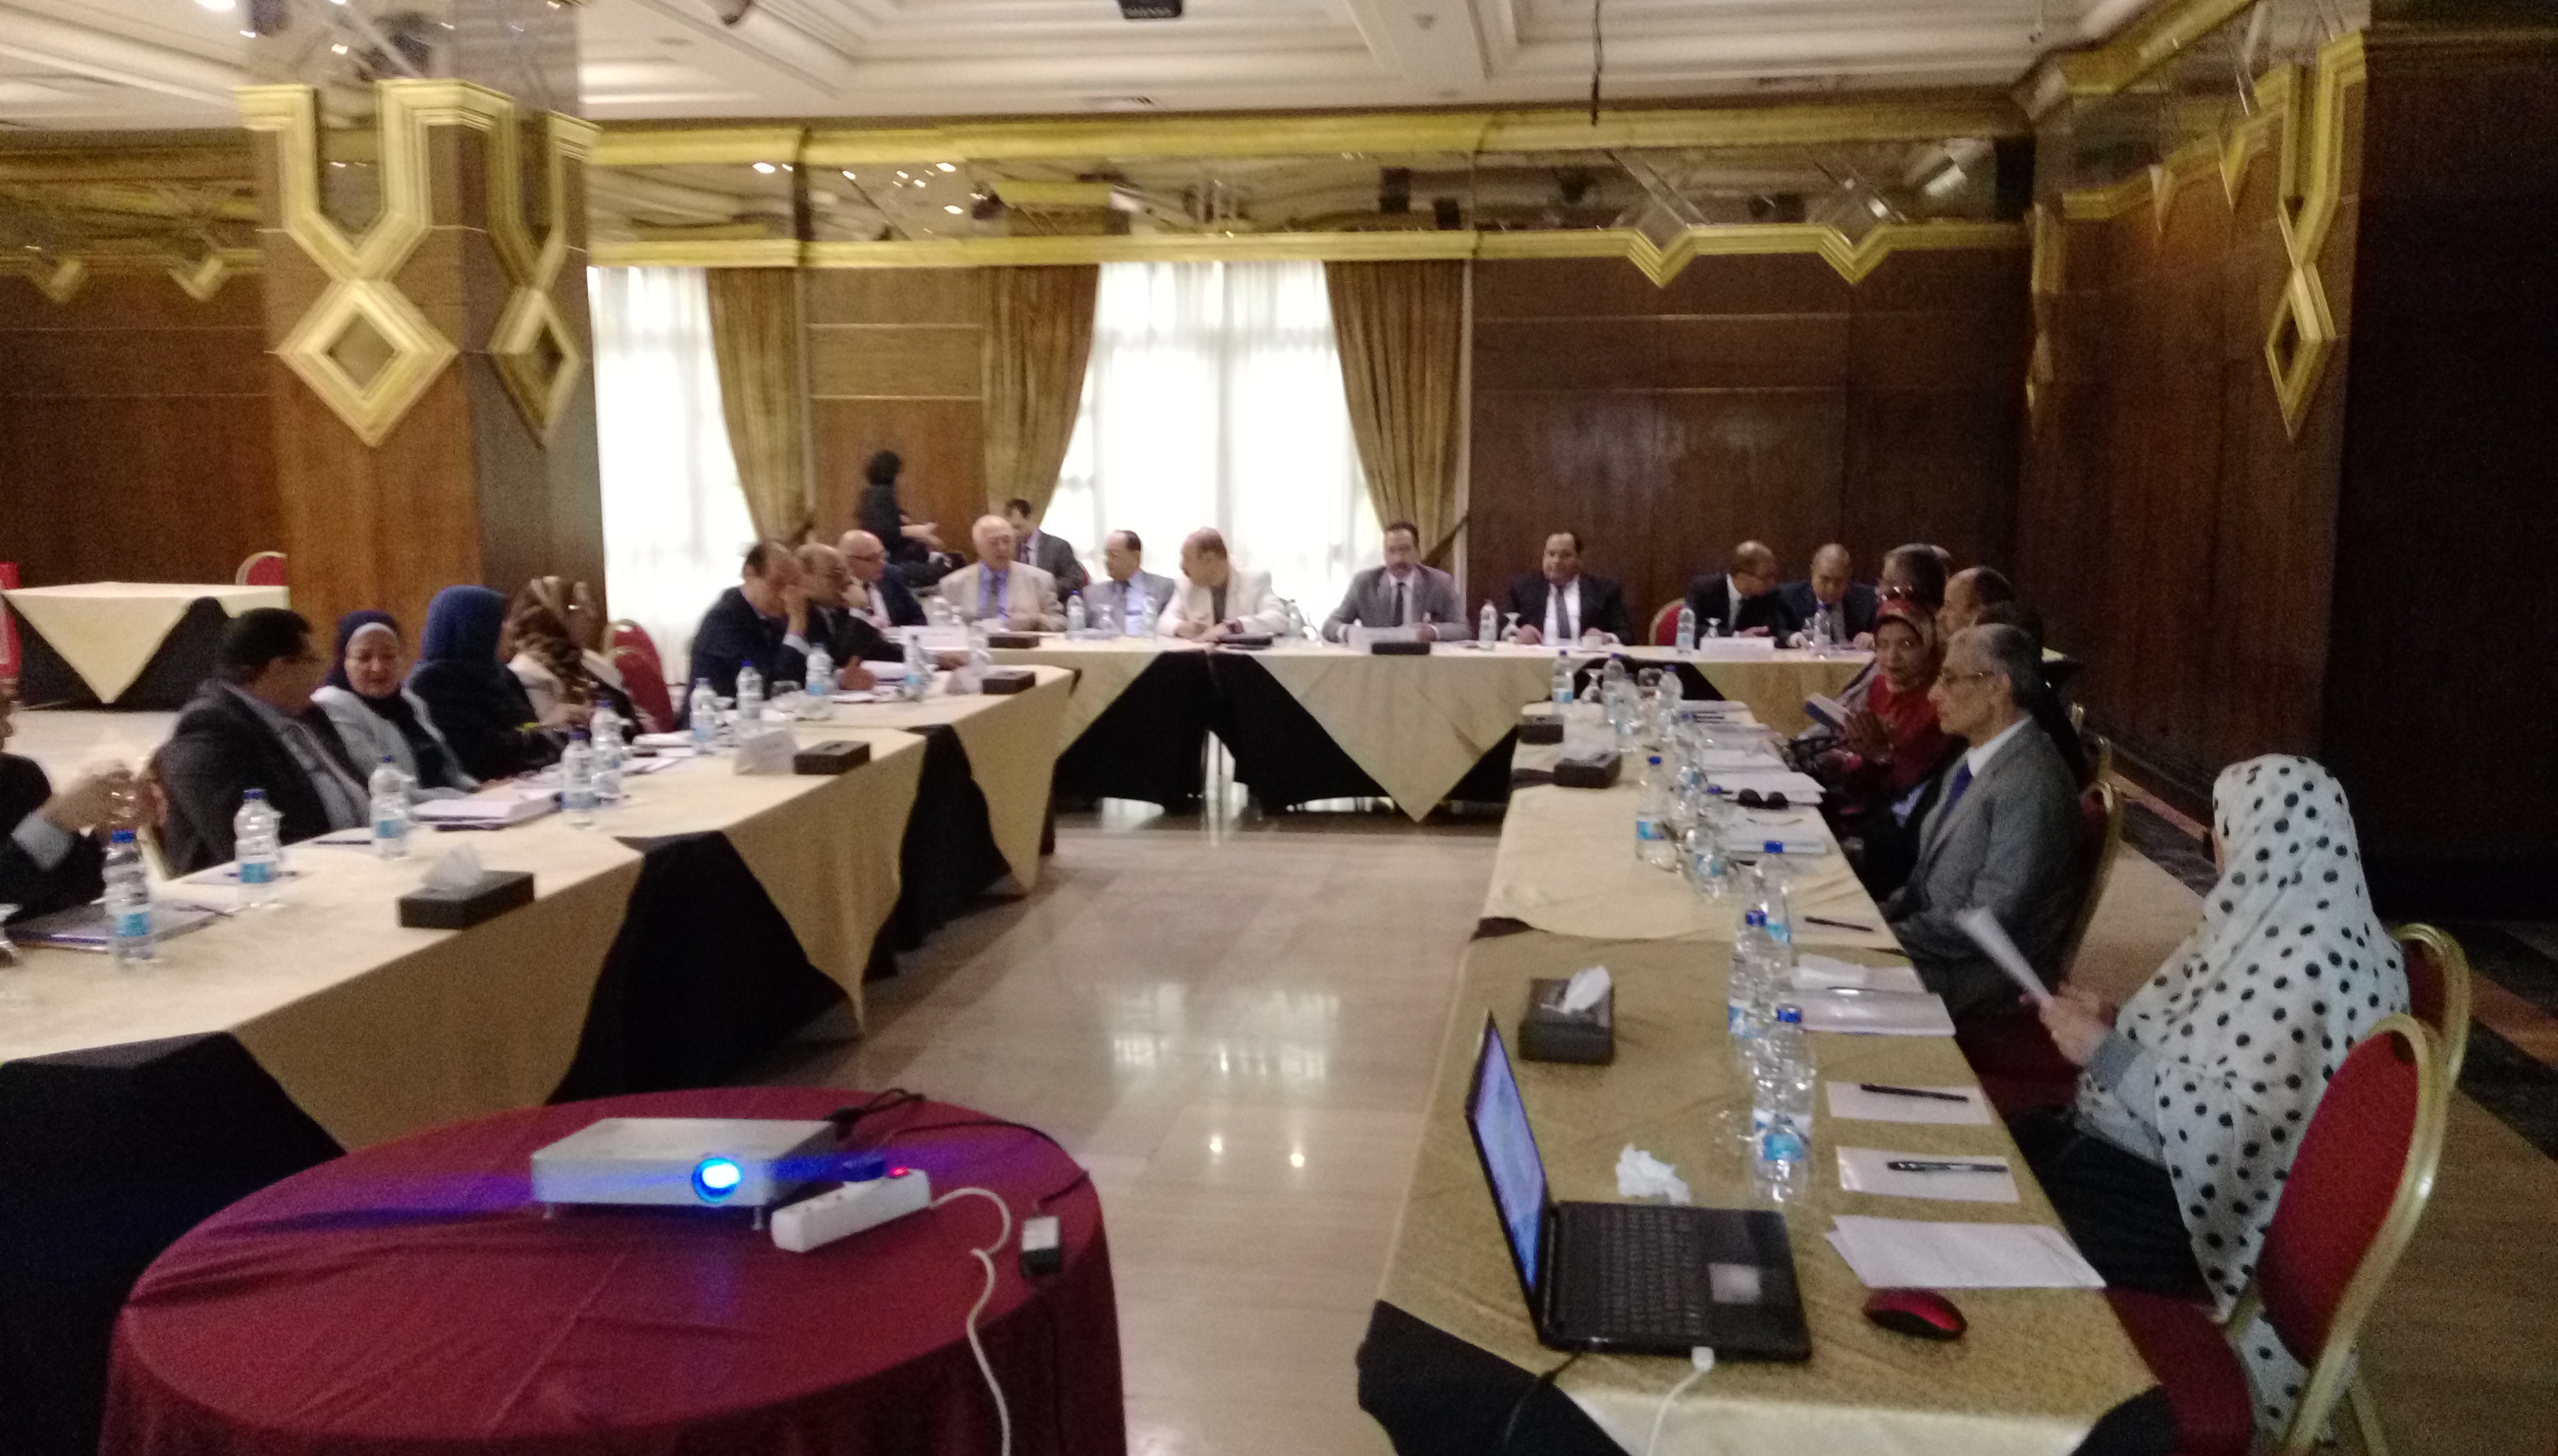 the ordinary General Assembly for Alexandria company  for investments and urban development to approve 2018 budget